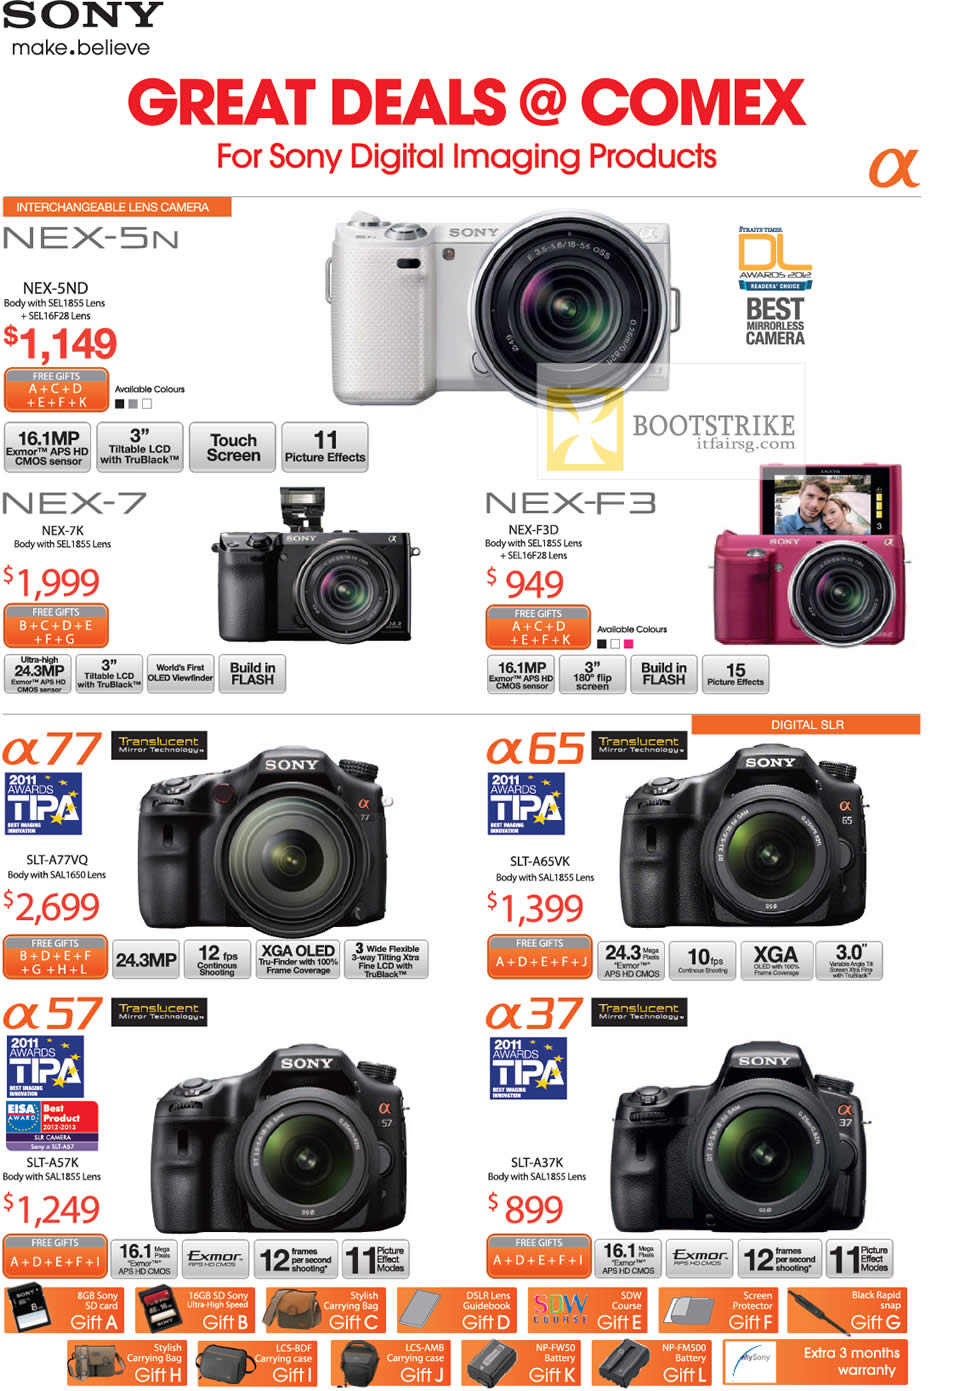 COMEX 2012 price list image brochure of Sony Digital Cameras Nex-5ND, Nex-7K, A77, SLT-A77VQ, A57K, A65VK, A37K, Nex-F3D